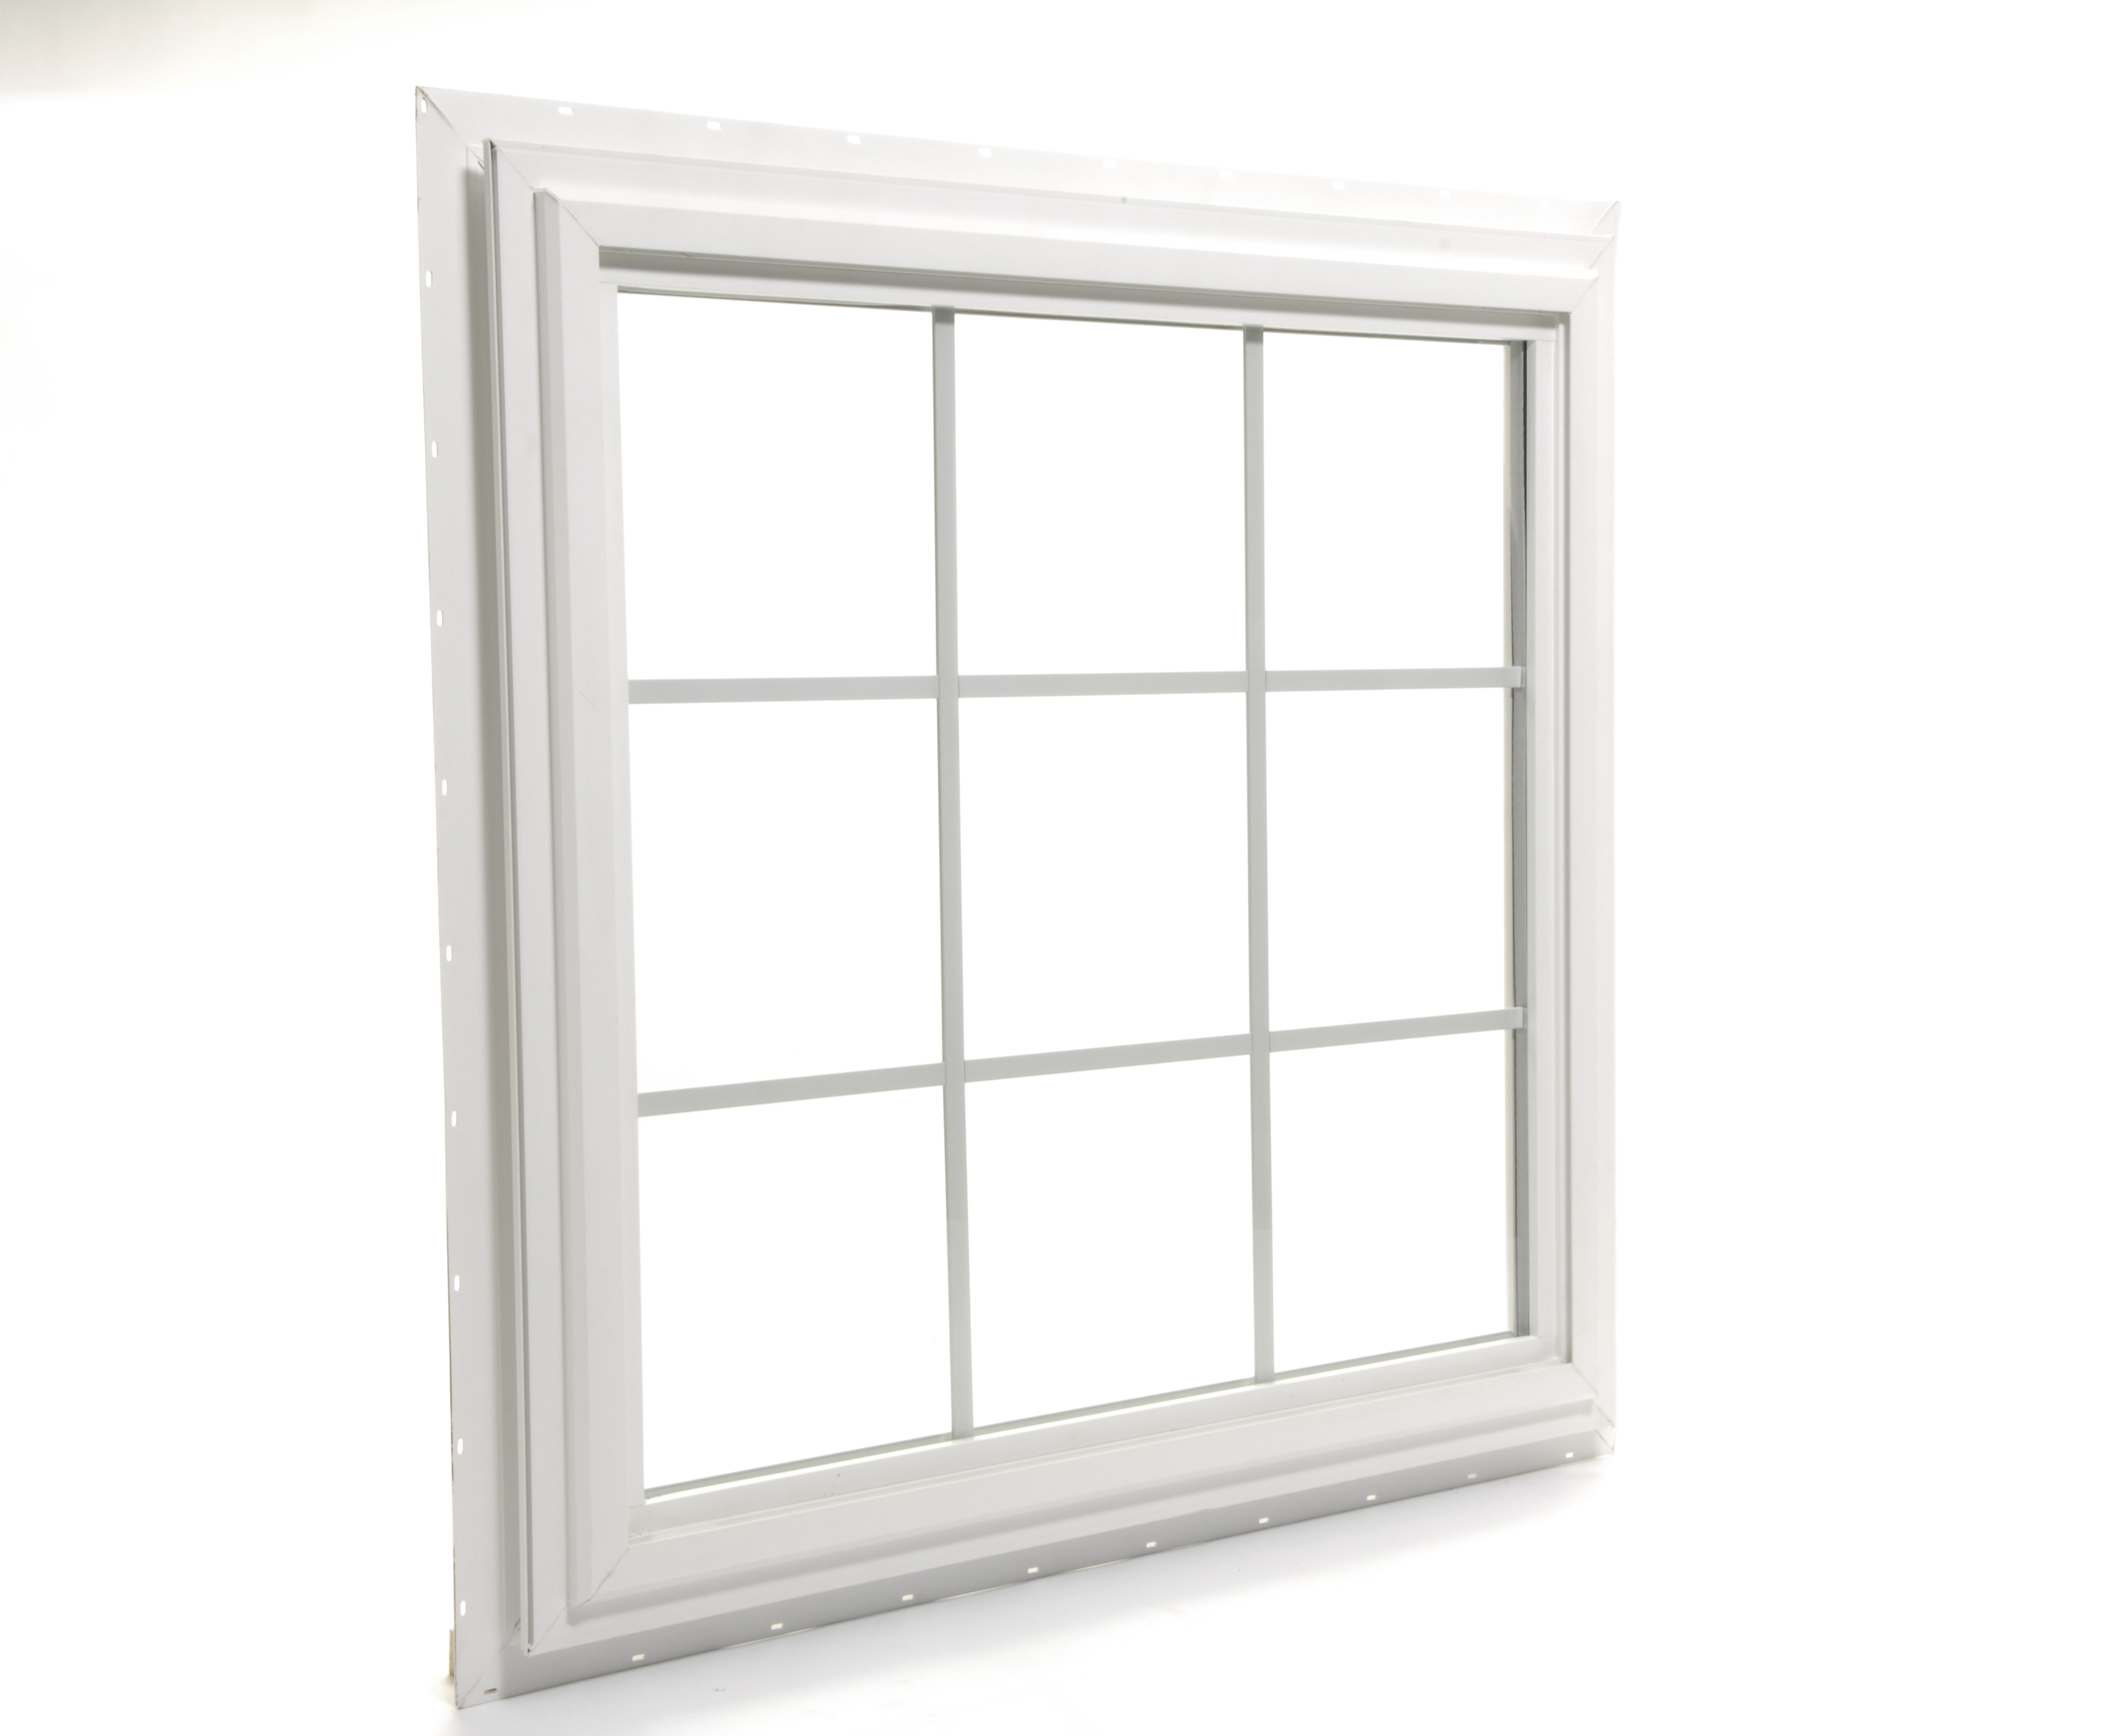 Dallas vinyl replacement window contractor perkins inc for Windows windows windows